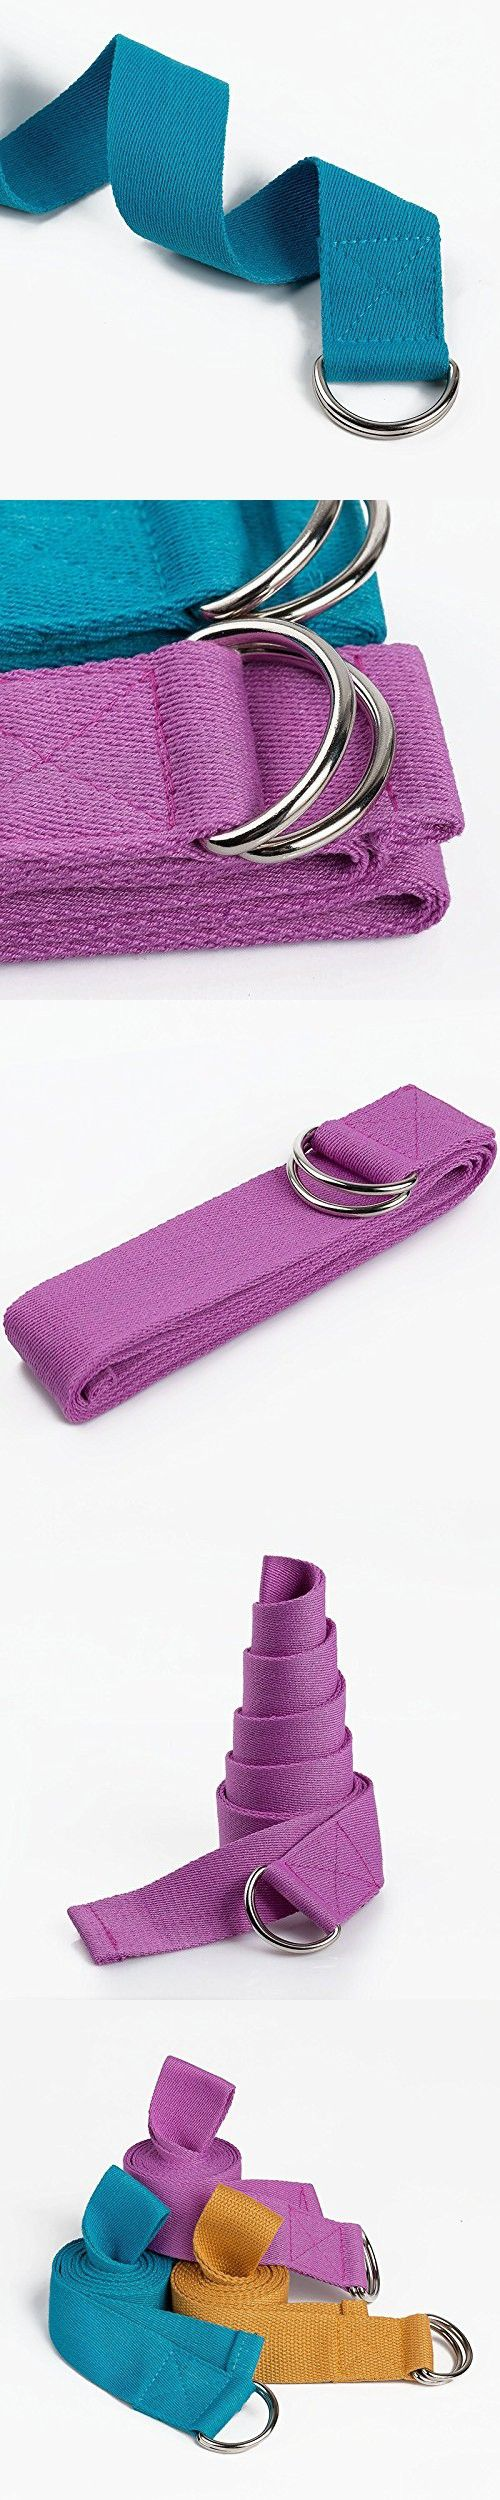 Pure Cotton Yoga Belt Fitness Straps with Tension, Thickening & Extended Jump Hold Brace 3.8X183 cm (1.571.5 inch)